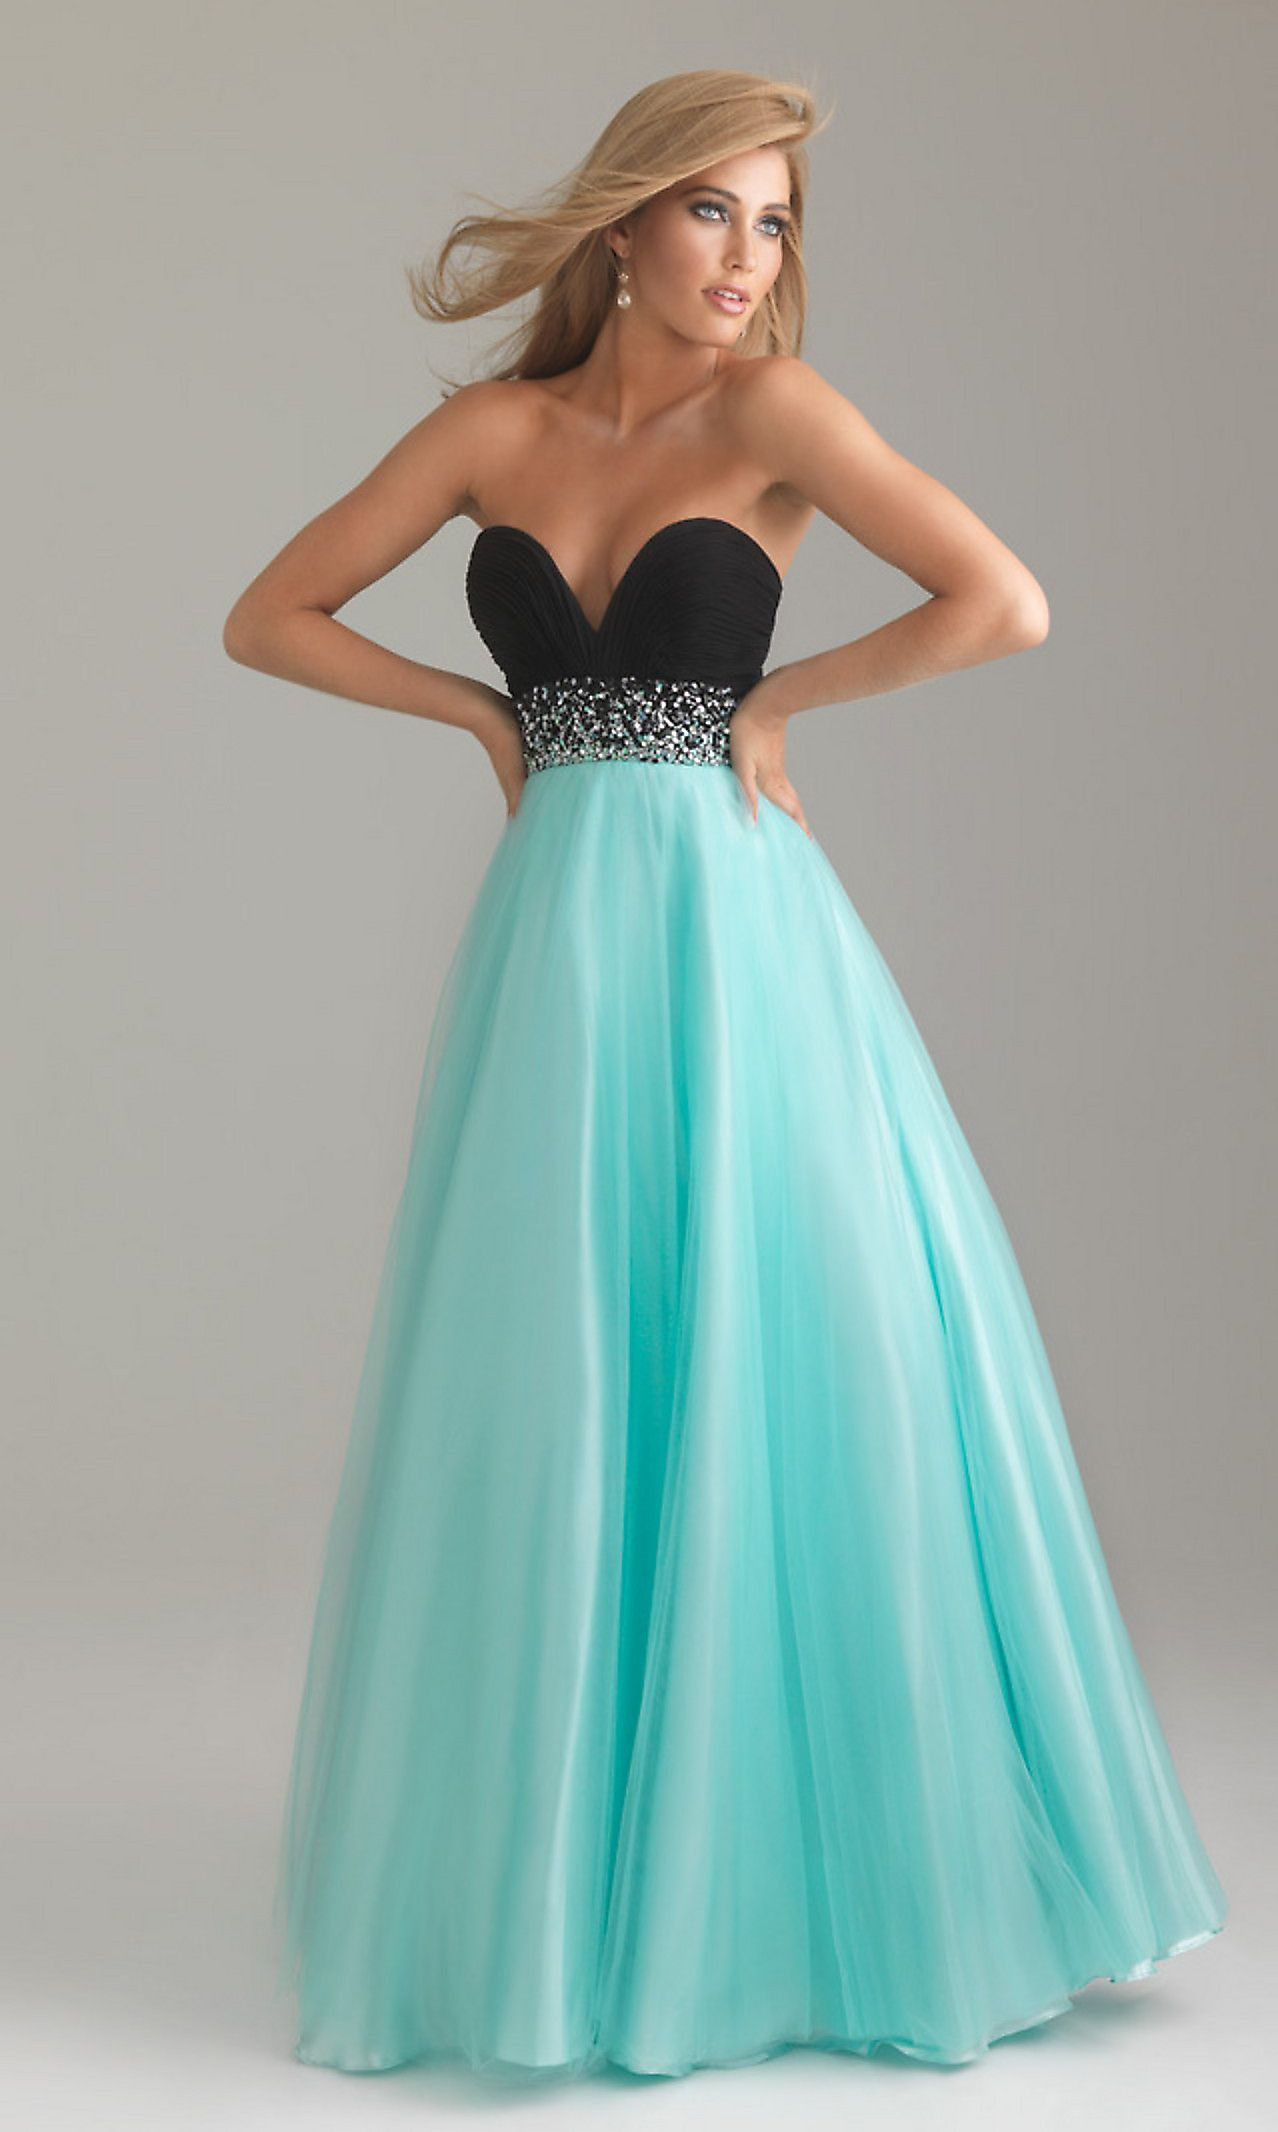 Awkward pose, but I love the bottom and sequins. | formal ...